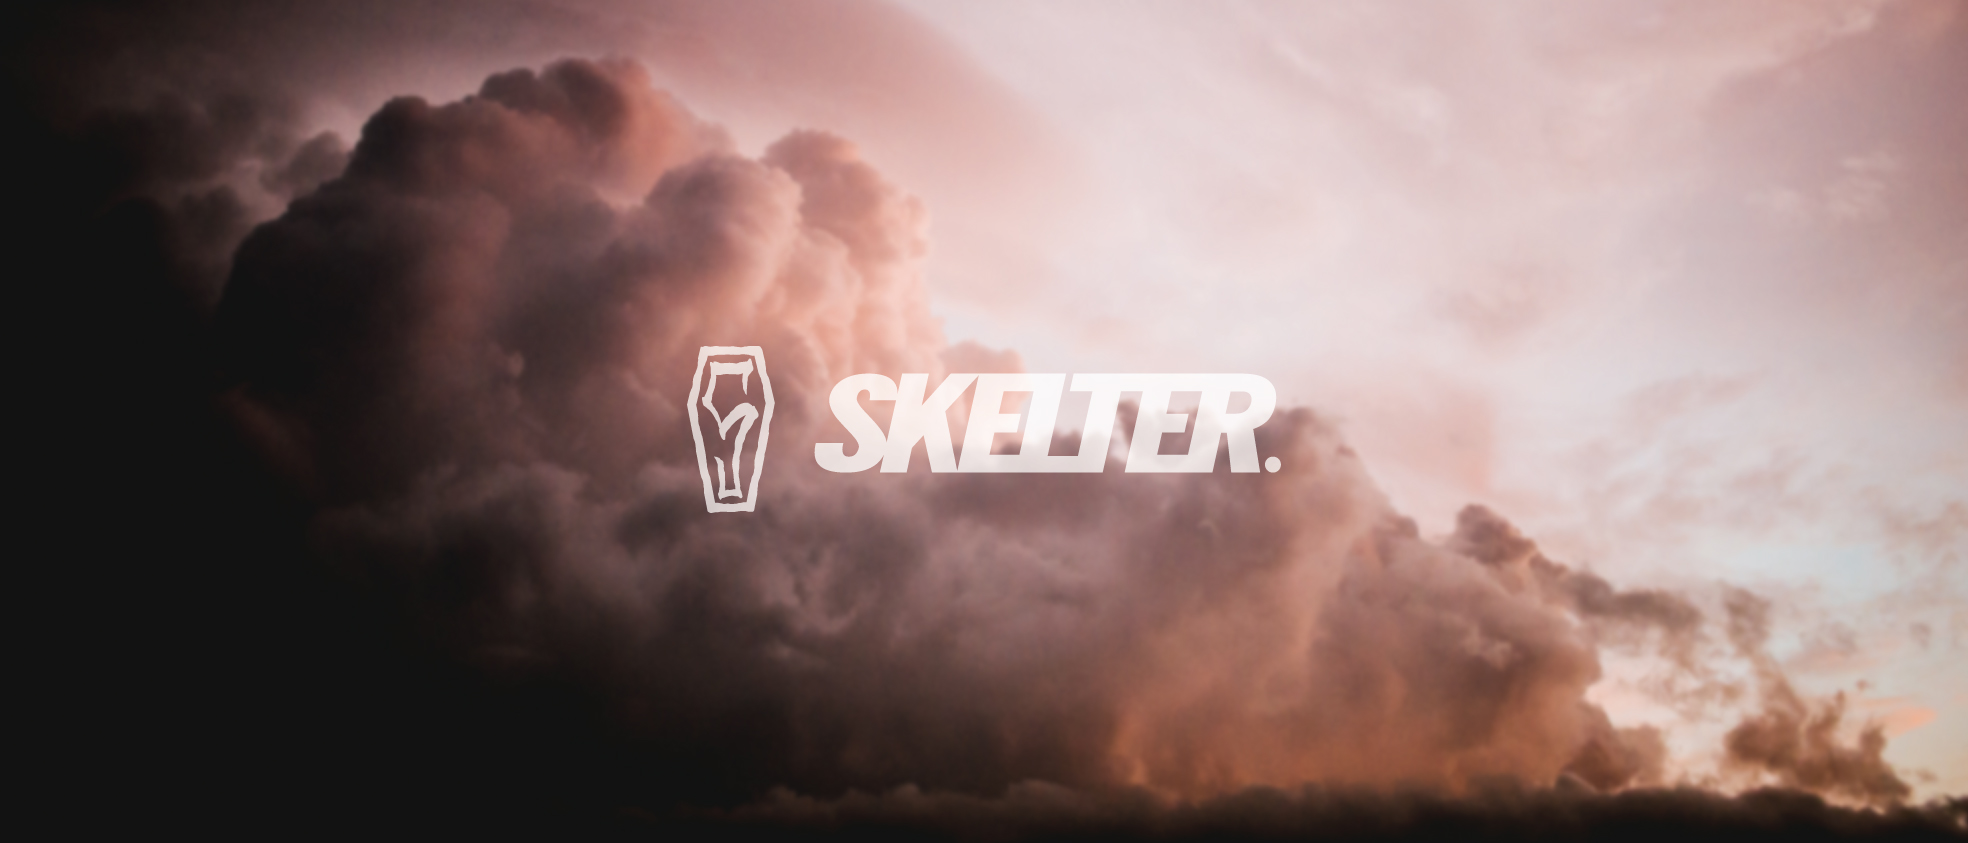 skelter-logo-clouds-banner